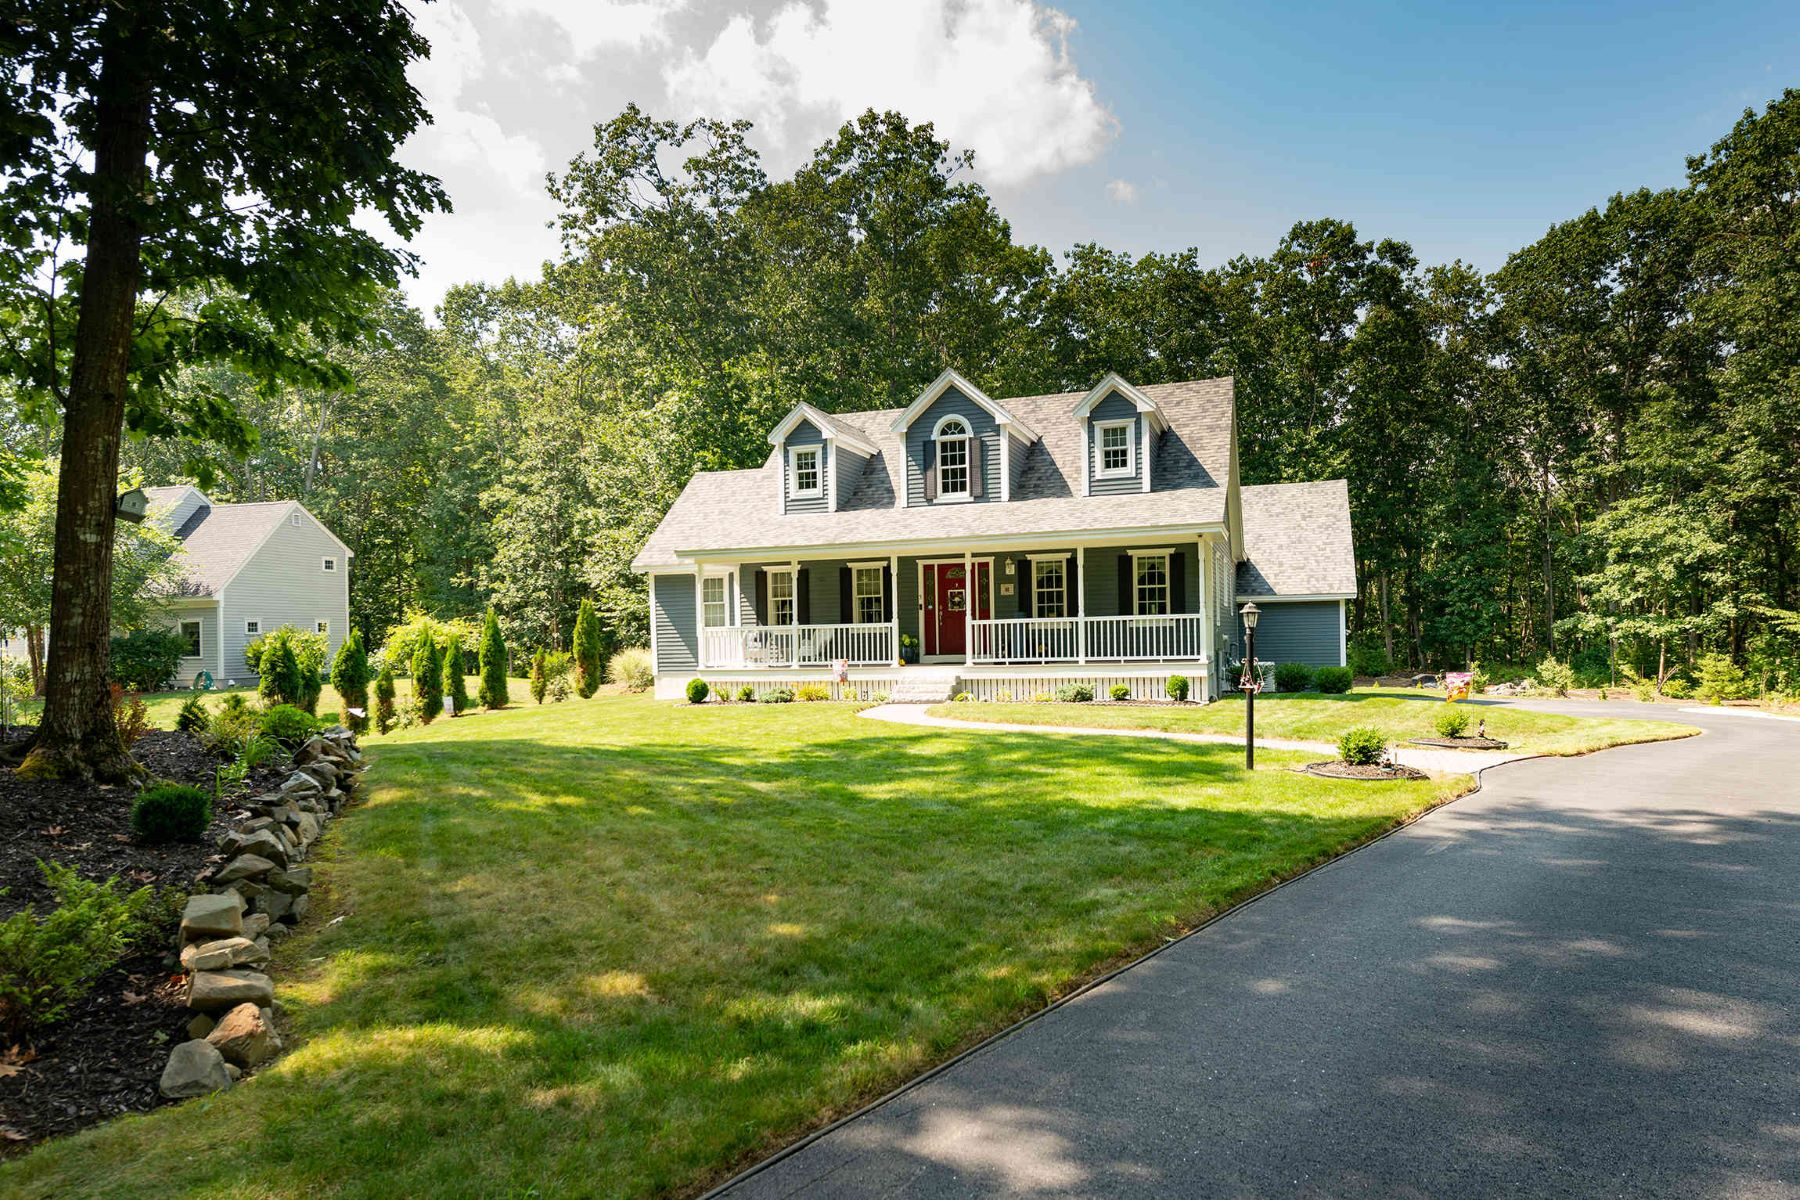 Single Family Homes for Active at Beautiful Classic Cape with Farmers Porch in Kittery 5 Janah Lane Kittery, Maine 03905 United States